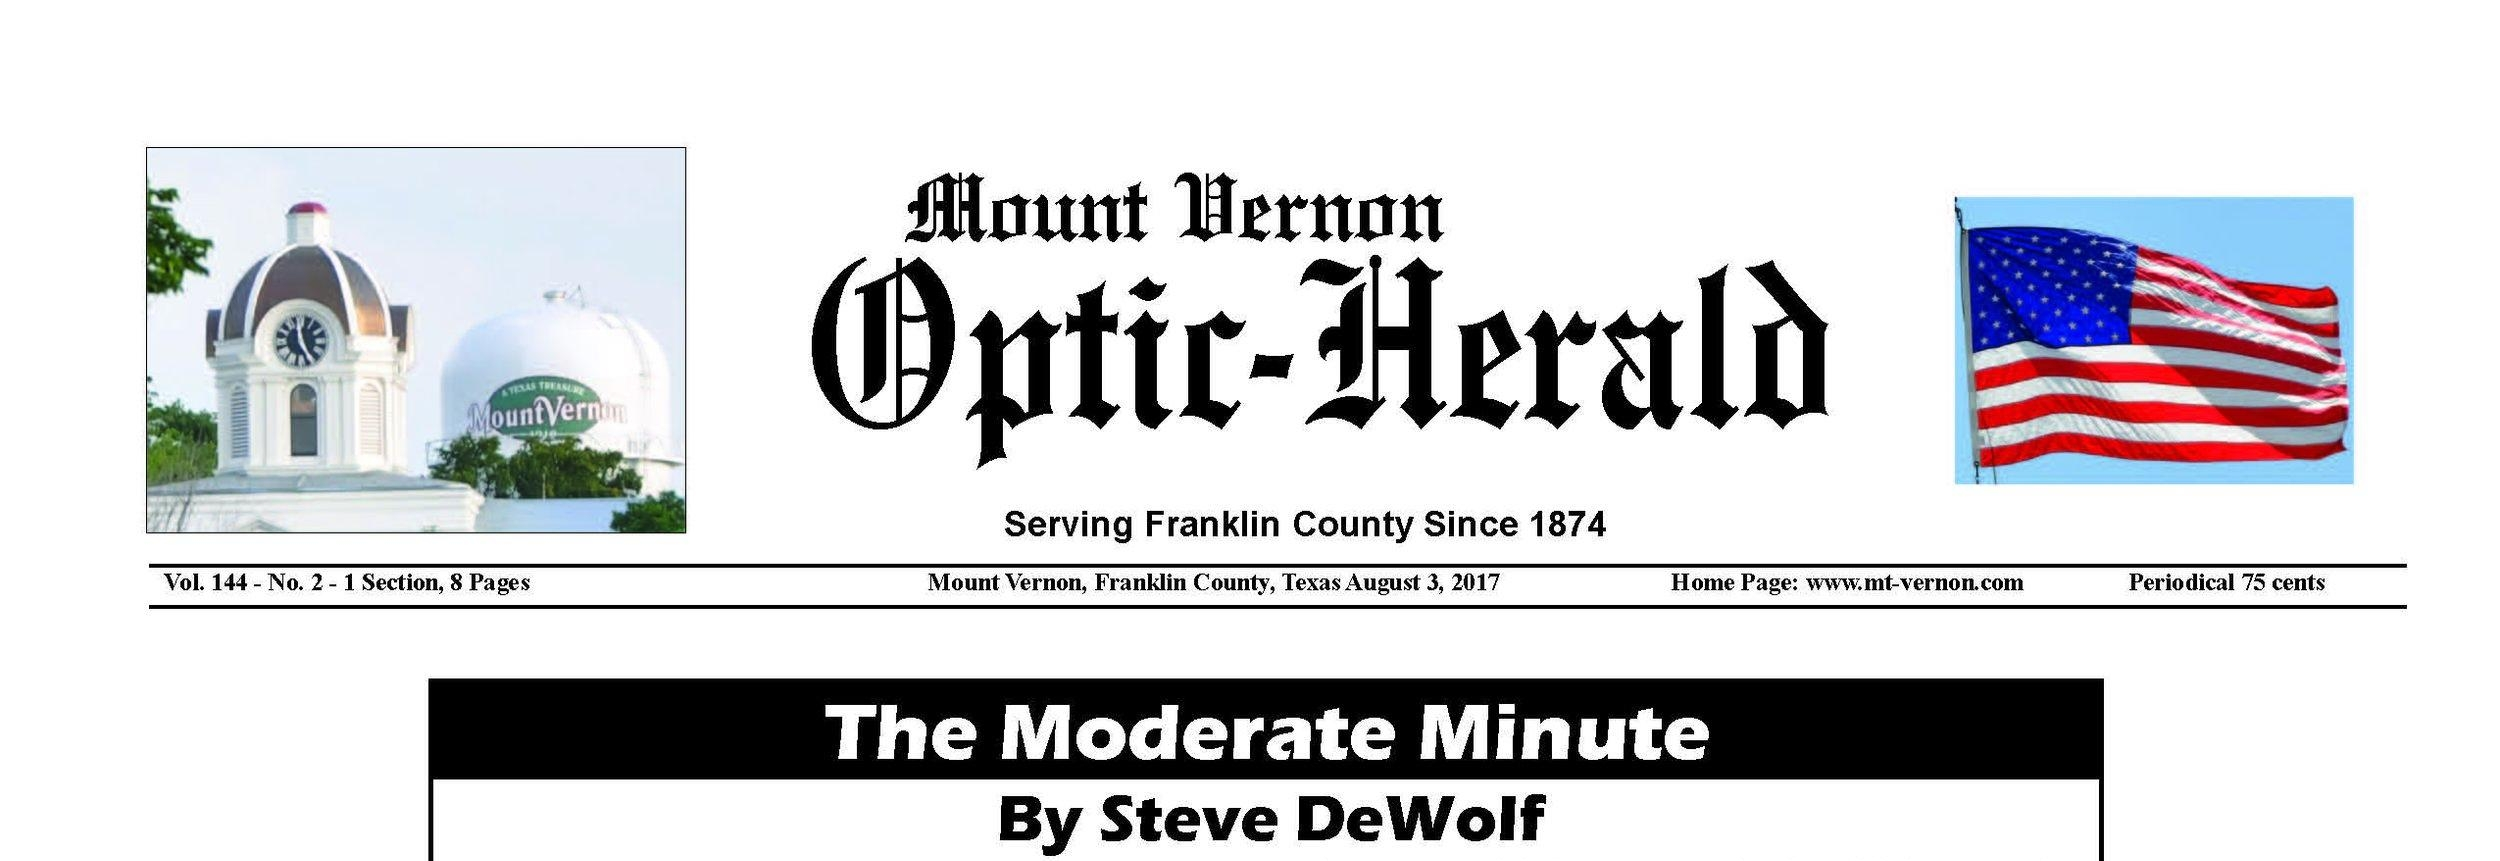 17 08 03 Final - Moderate Minute (as published by Optic-Herald).jpg